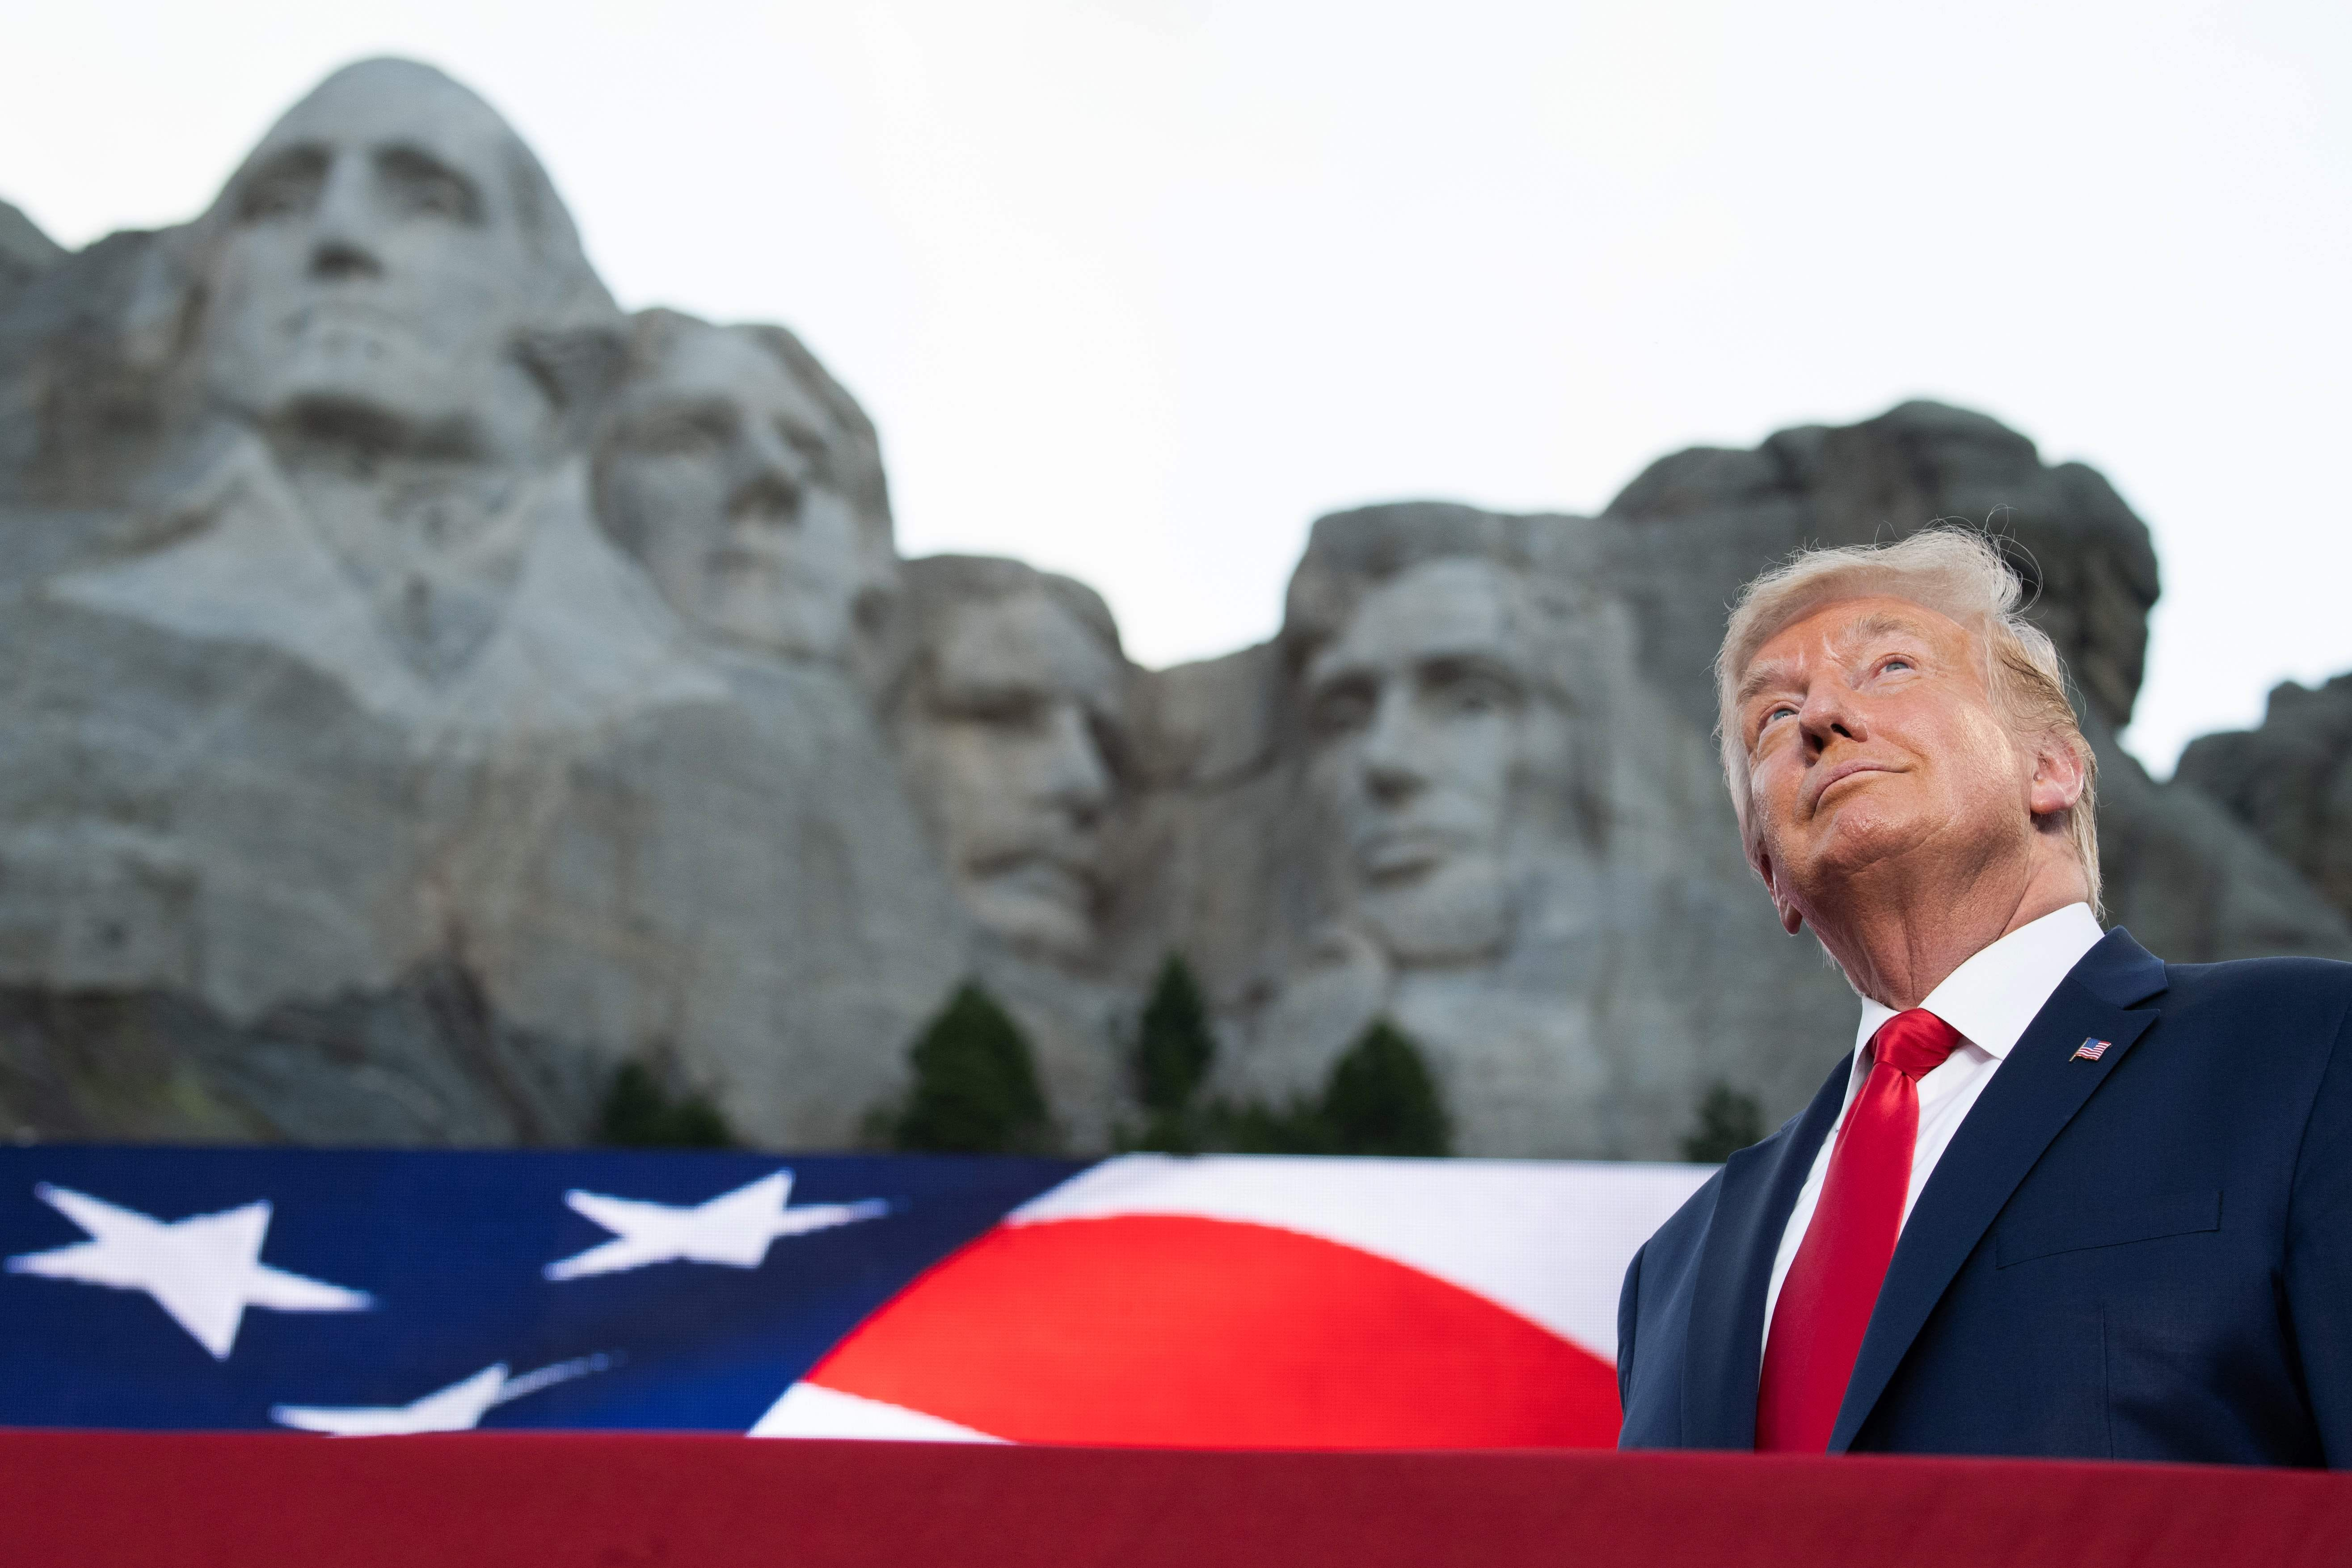 Trump says adding his face to Mount Rushmore would be a  good idea.  It would likely be impossible